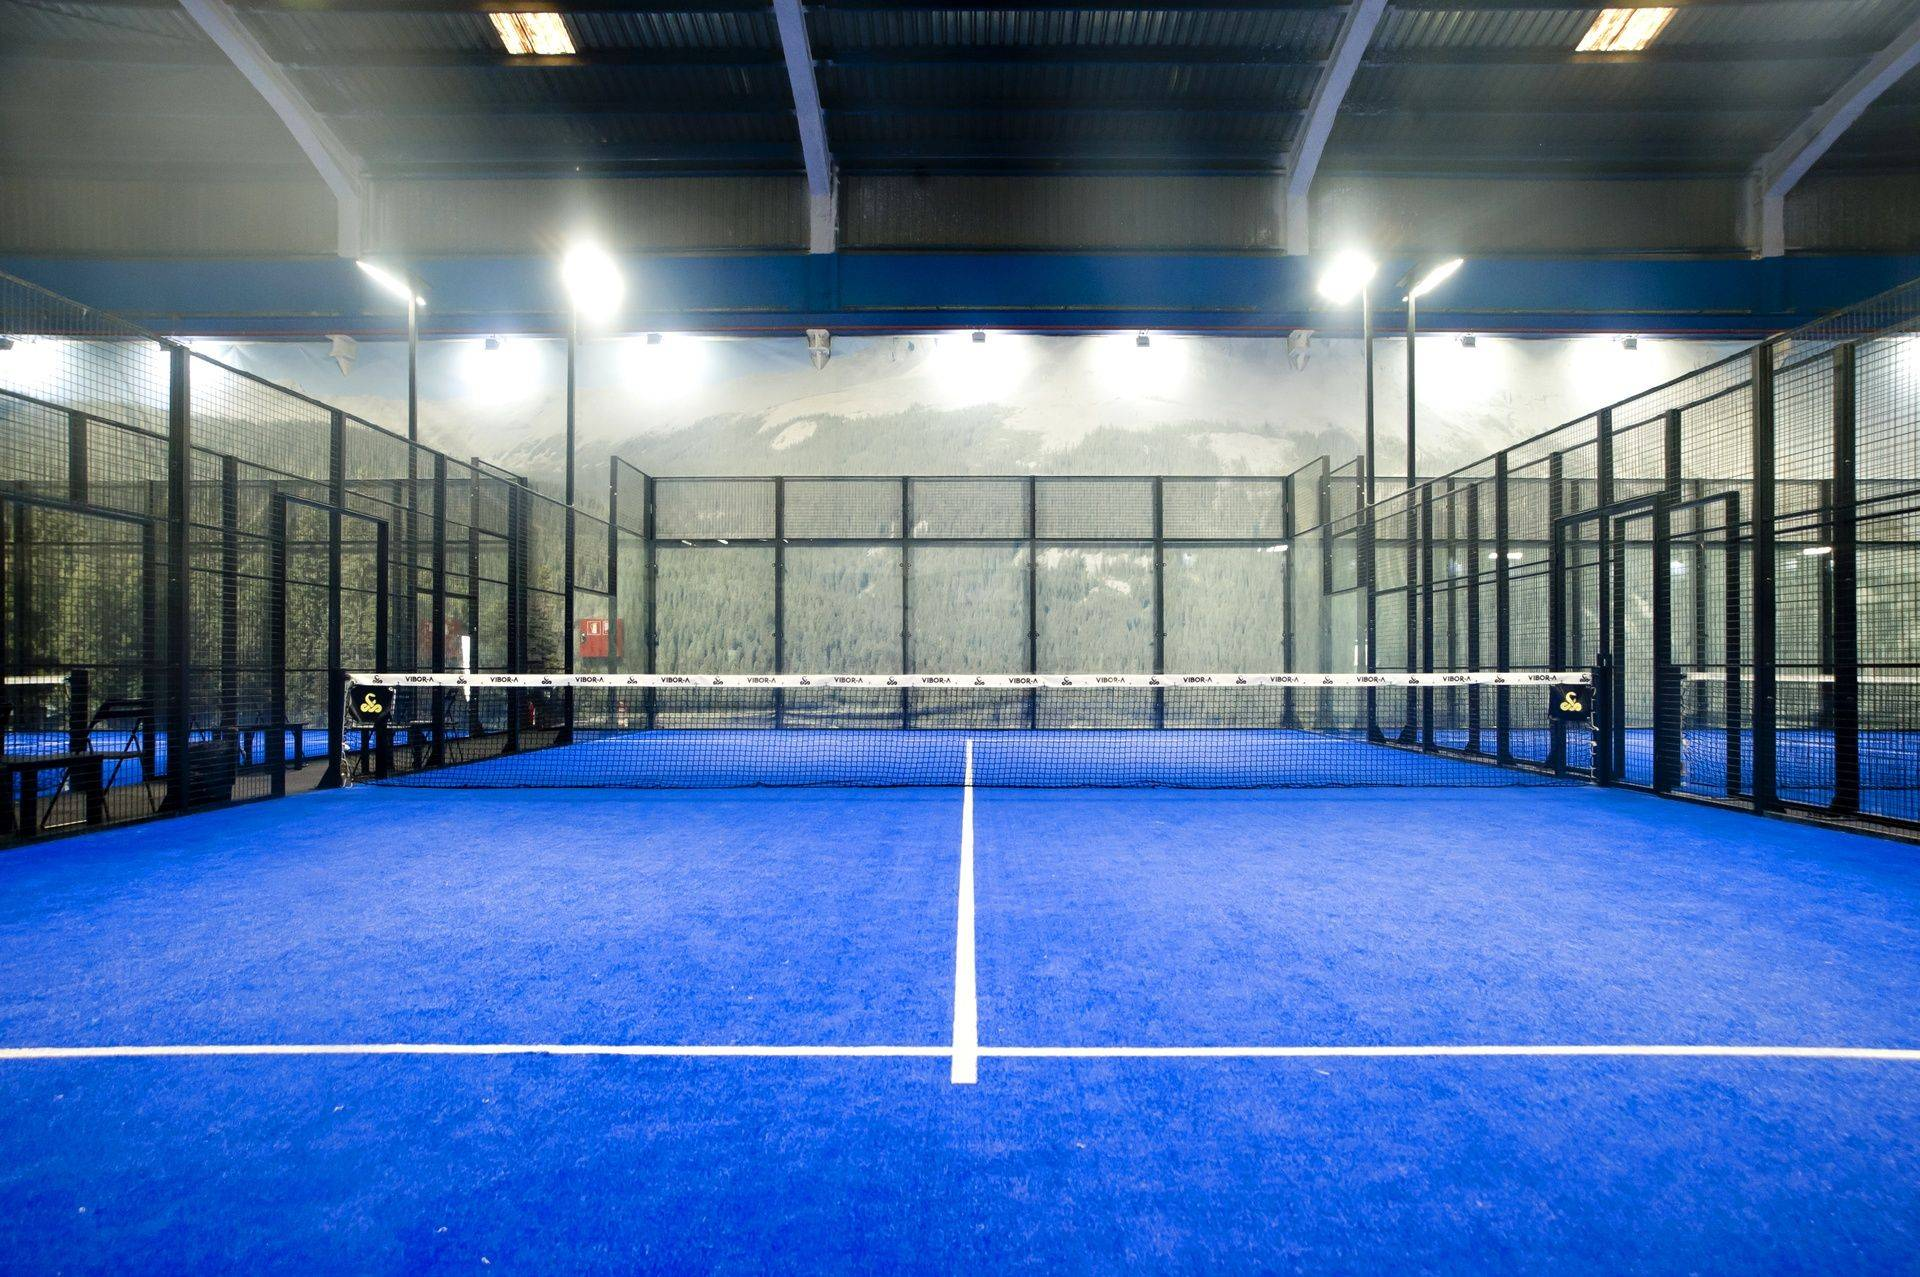 Word padel tour official court supplier, wpt padel court construction